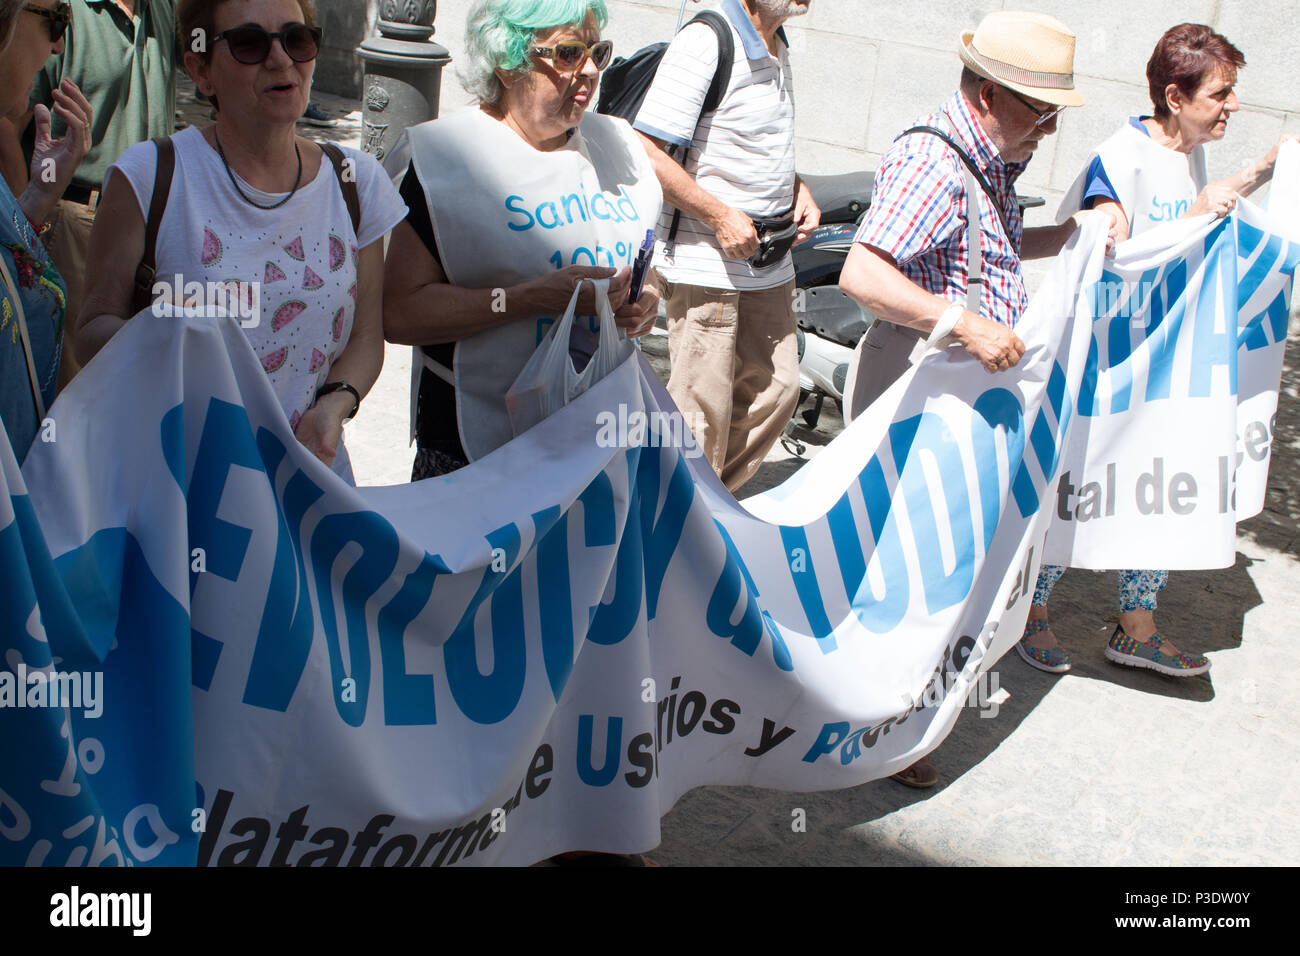 A pancart that says 'Return all the privatized'. People comes to the 69th White Tide for protest against the privatization of public Healhtcare. (Photo by Jorge Gonzalez / Pacific Press) - Stock Image